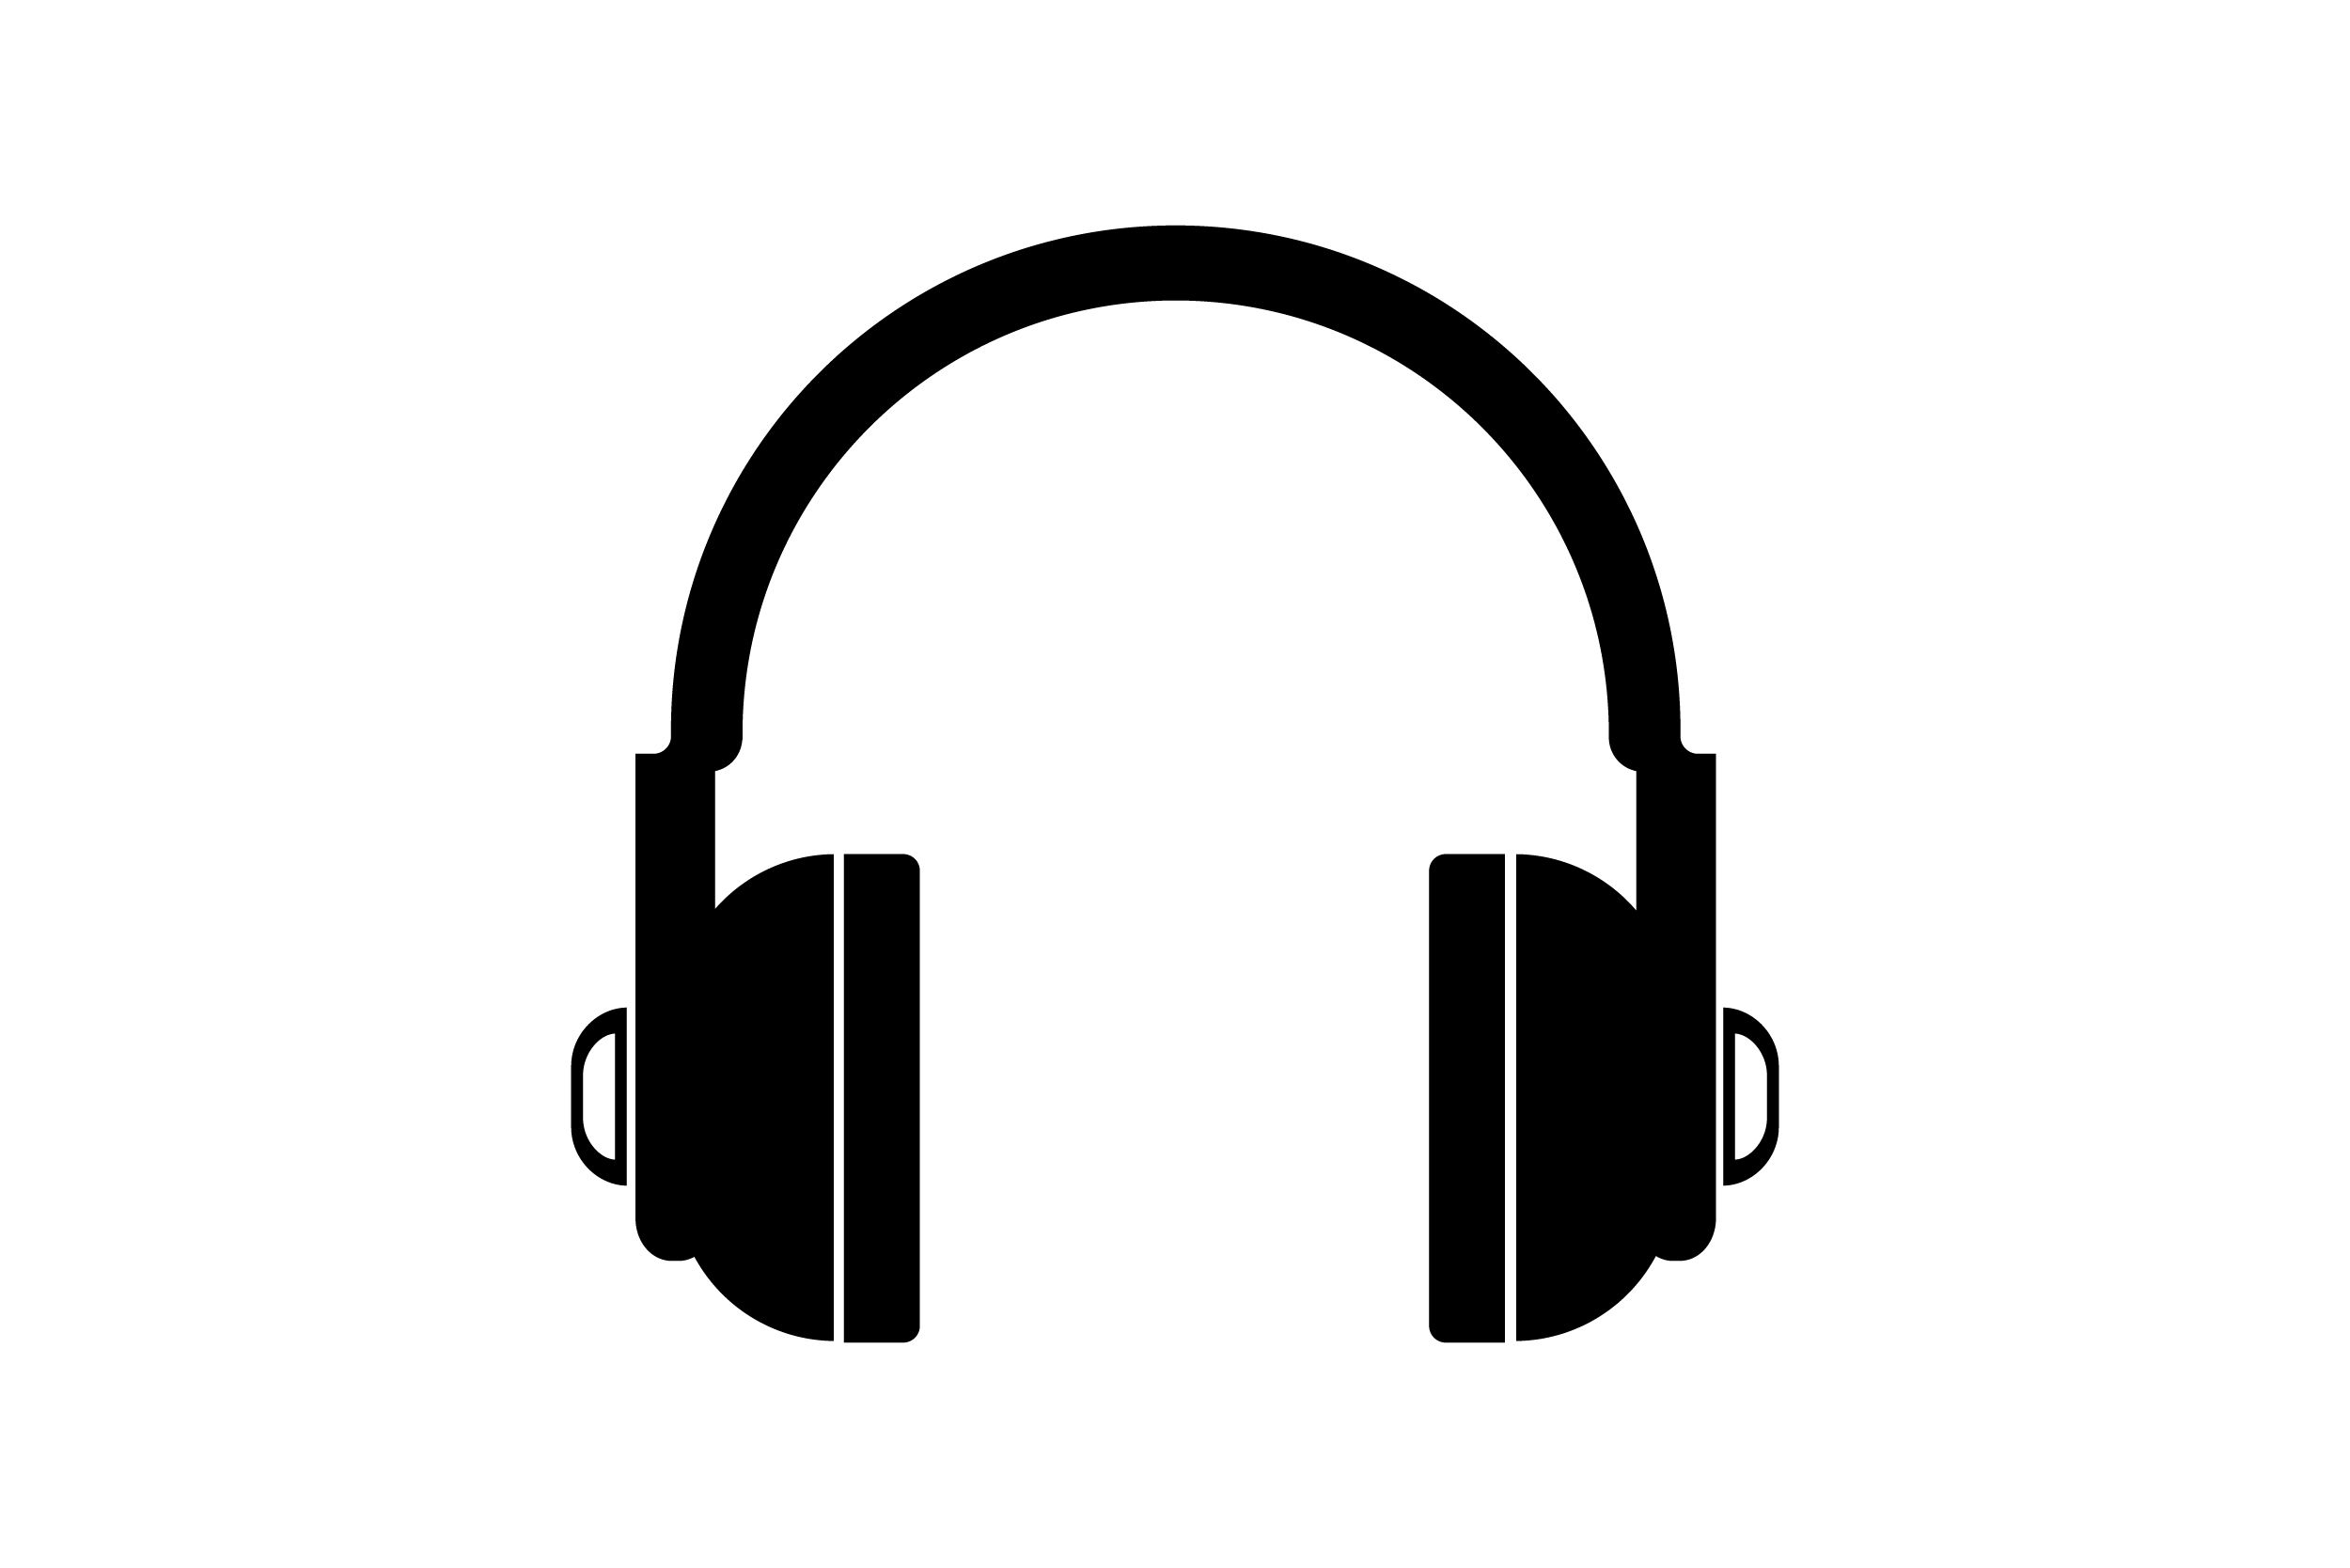 Headphones Computer Icons Png Audio Audio Equipment Black And White Computer Icons Desktop Wallpaper Computer Icon Png Icon